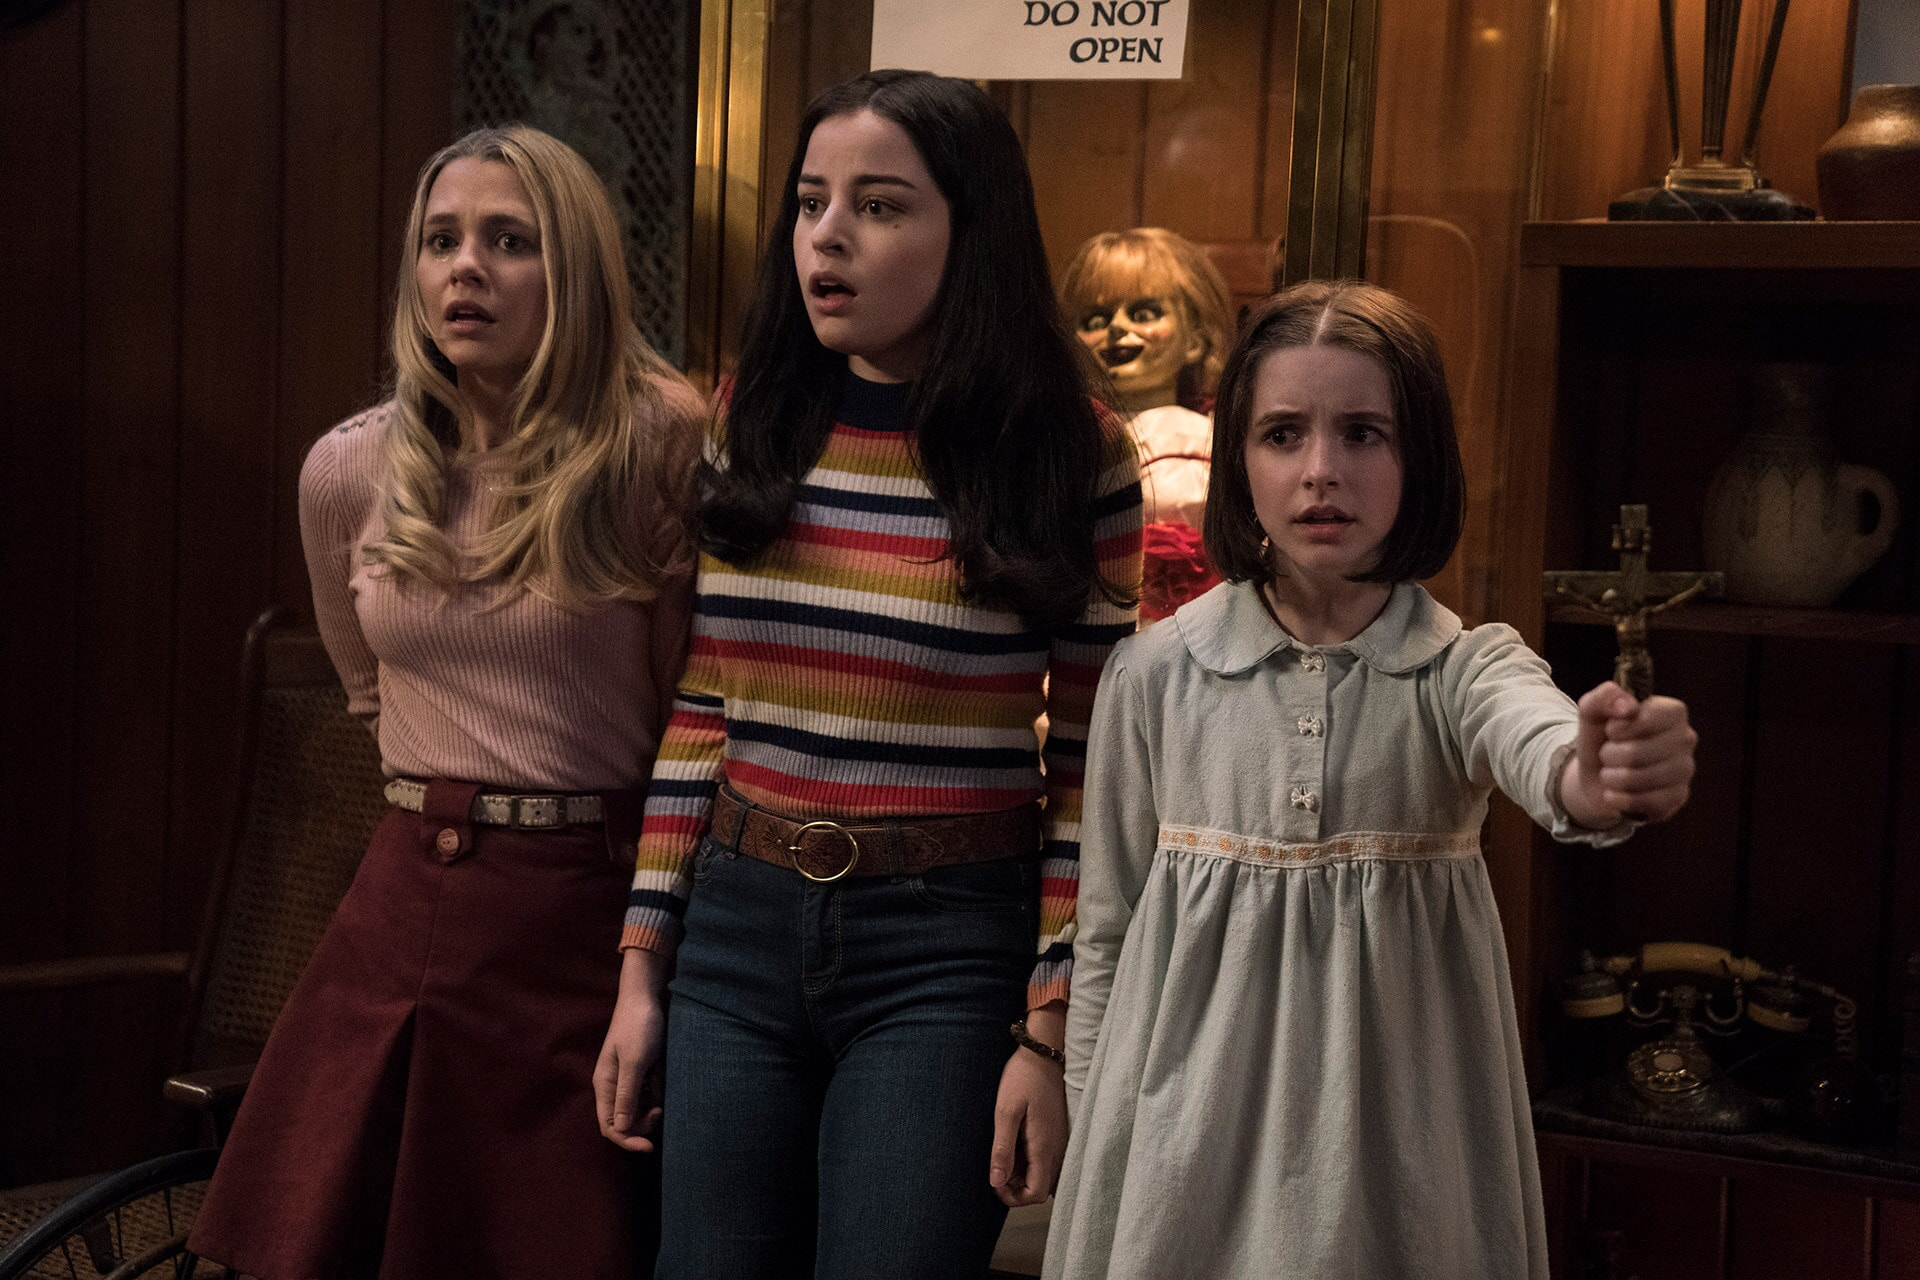 (L-R) MADISON ISEMAN as Mary Ellen, KATIE SARIFE as Daniela, the Annabelle doll and MCKENNA GRACE as Judy Warren